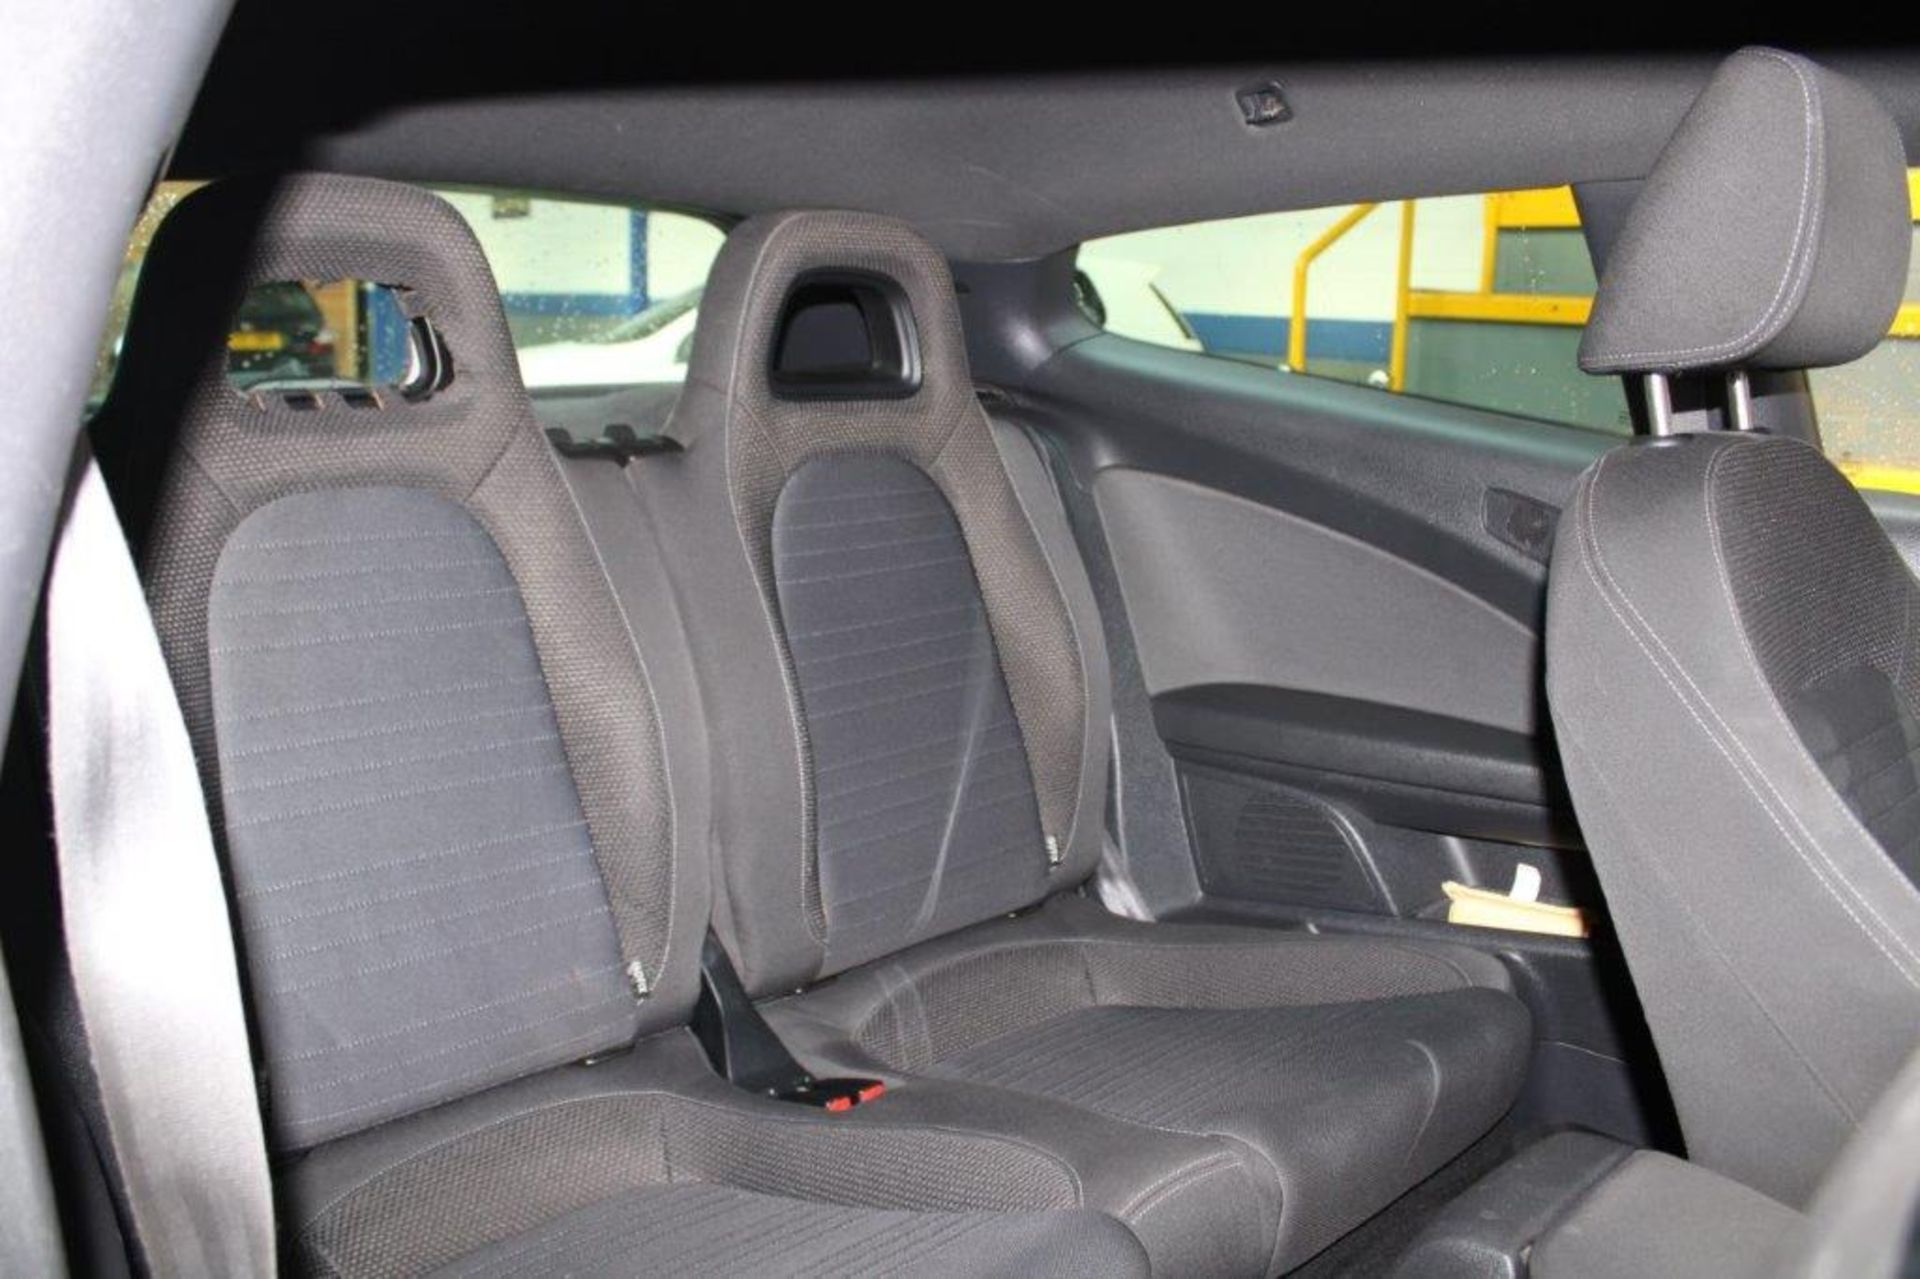 58 08 VW Scirocco GT - Image 29 of 29